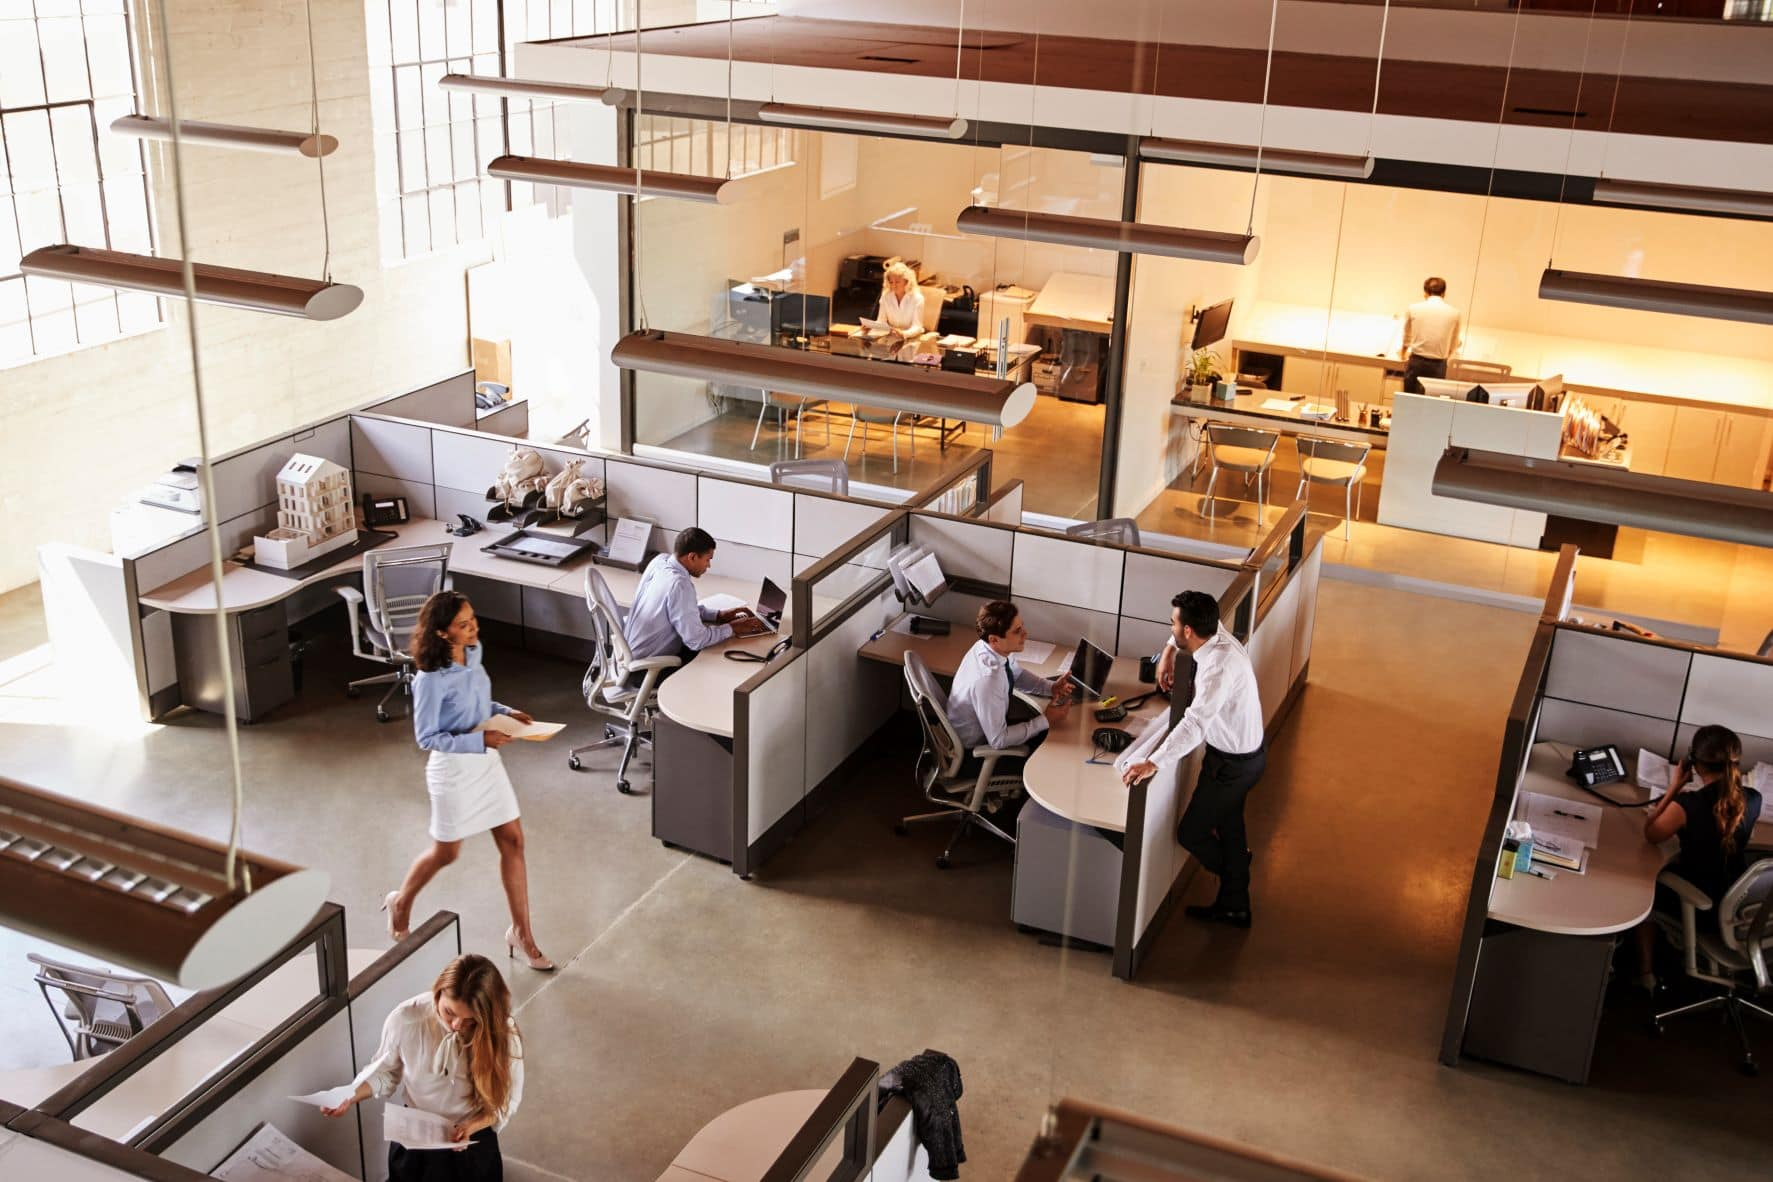 How Does Lighting Affect Your Office Environment?